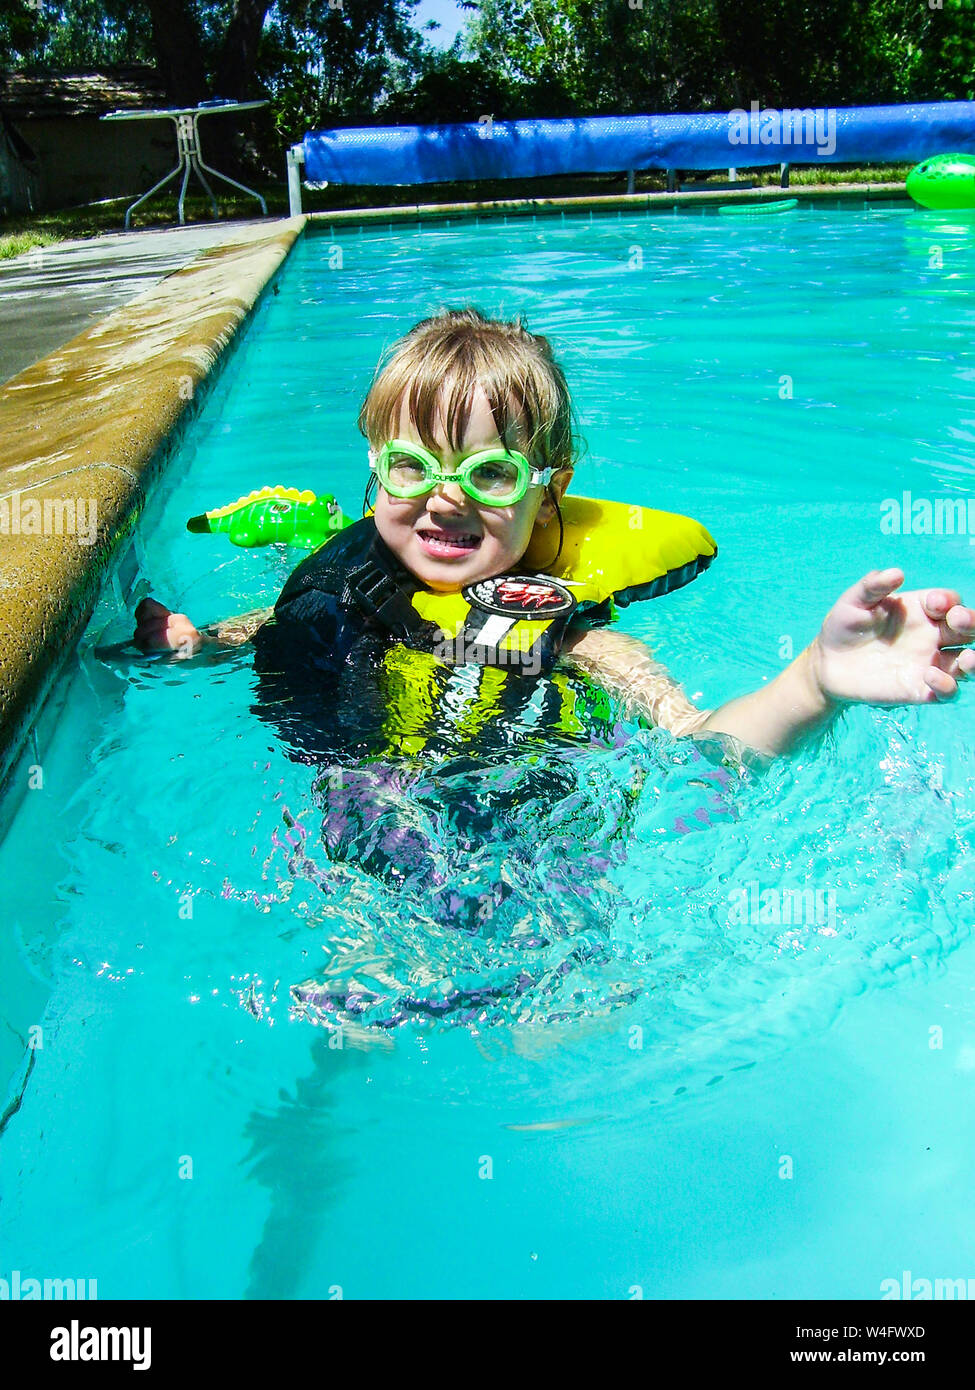 A fully equipped young girl safely swims alone in a pool Stock Photo